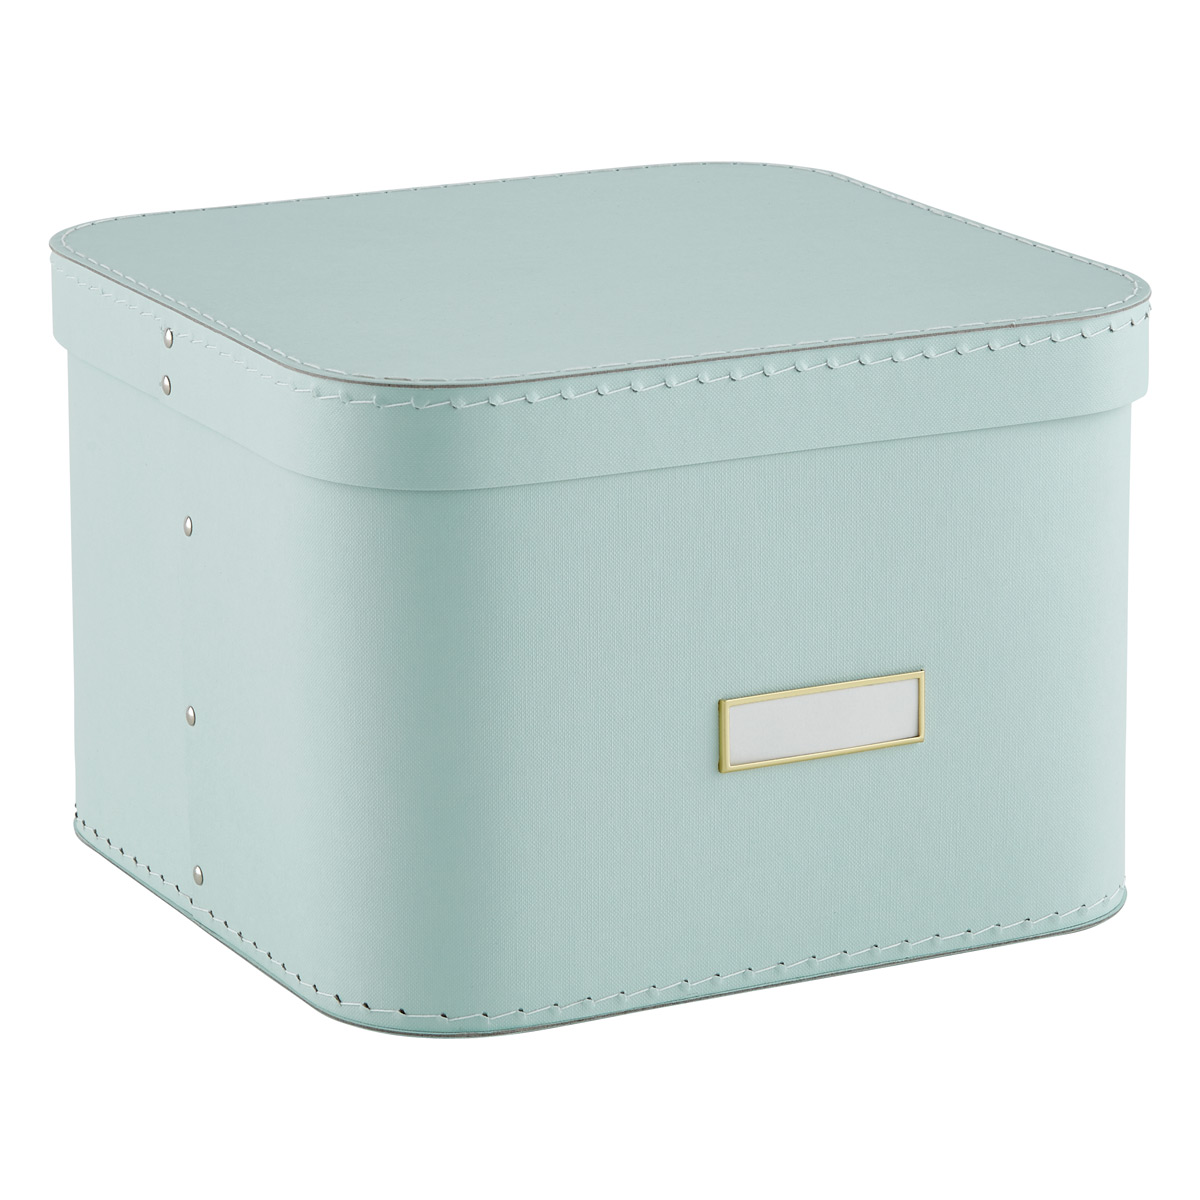 Mint Oskar Storage Box with Lid  sc 1 st  The Container Store & Mint Oskar Storage Box with Lid | The Container Store